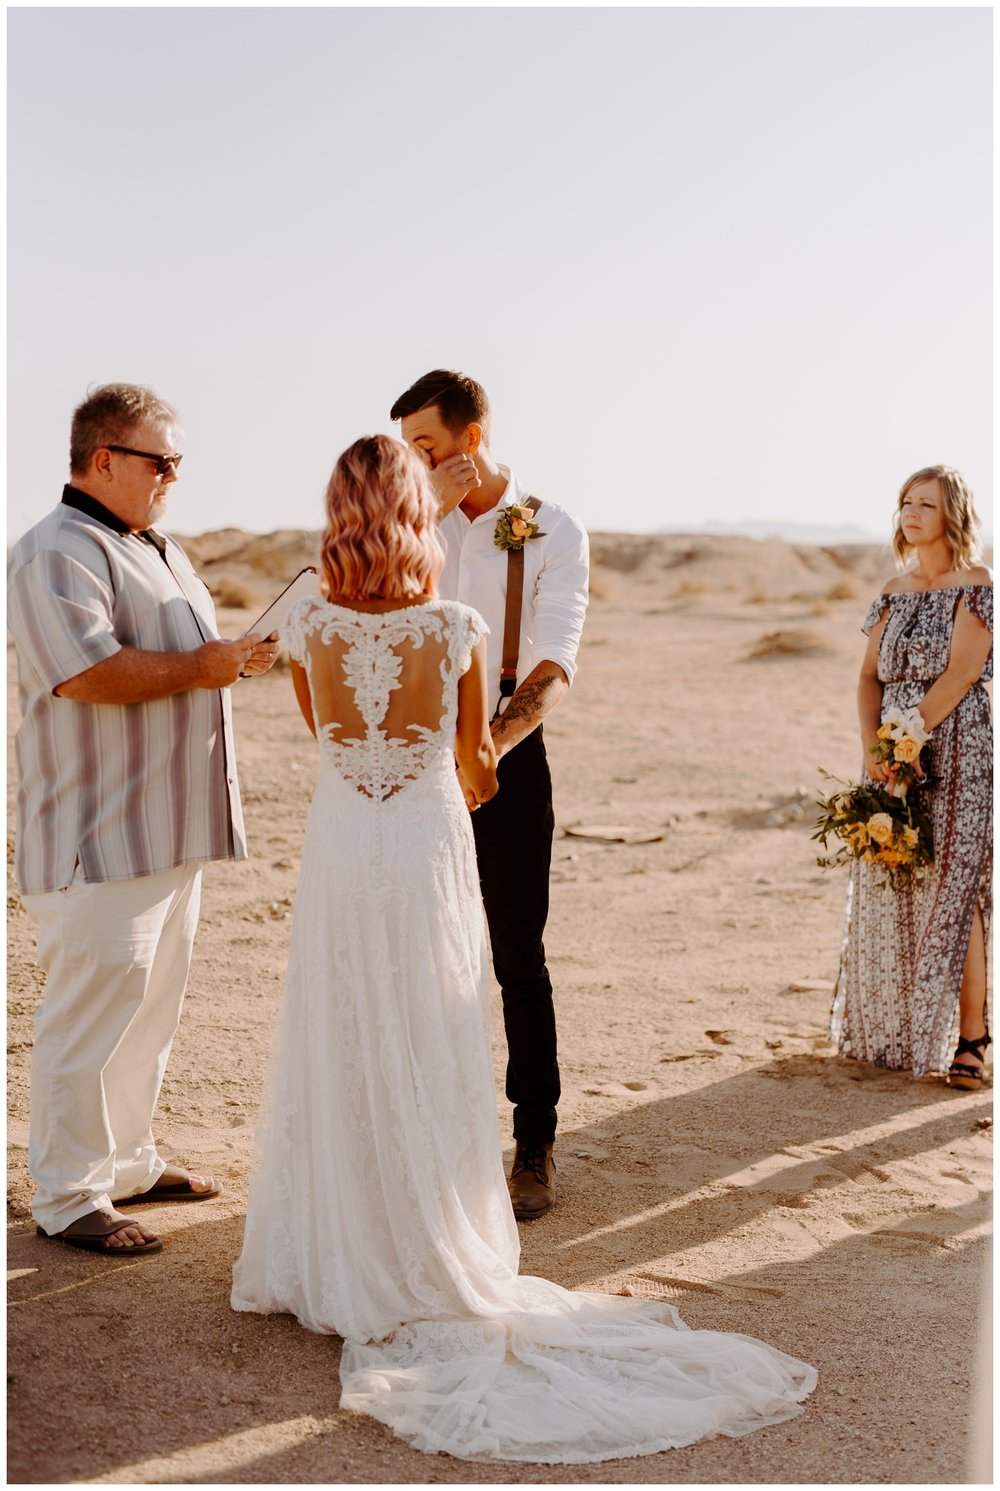 Salvation Mountain Elopement Palm Springs Pink Hair Bride - Jessica Heron Images_0132.jpg